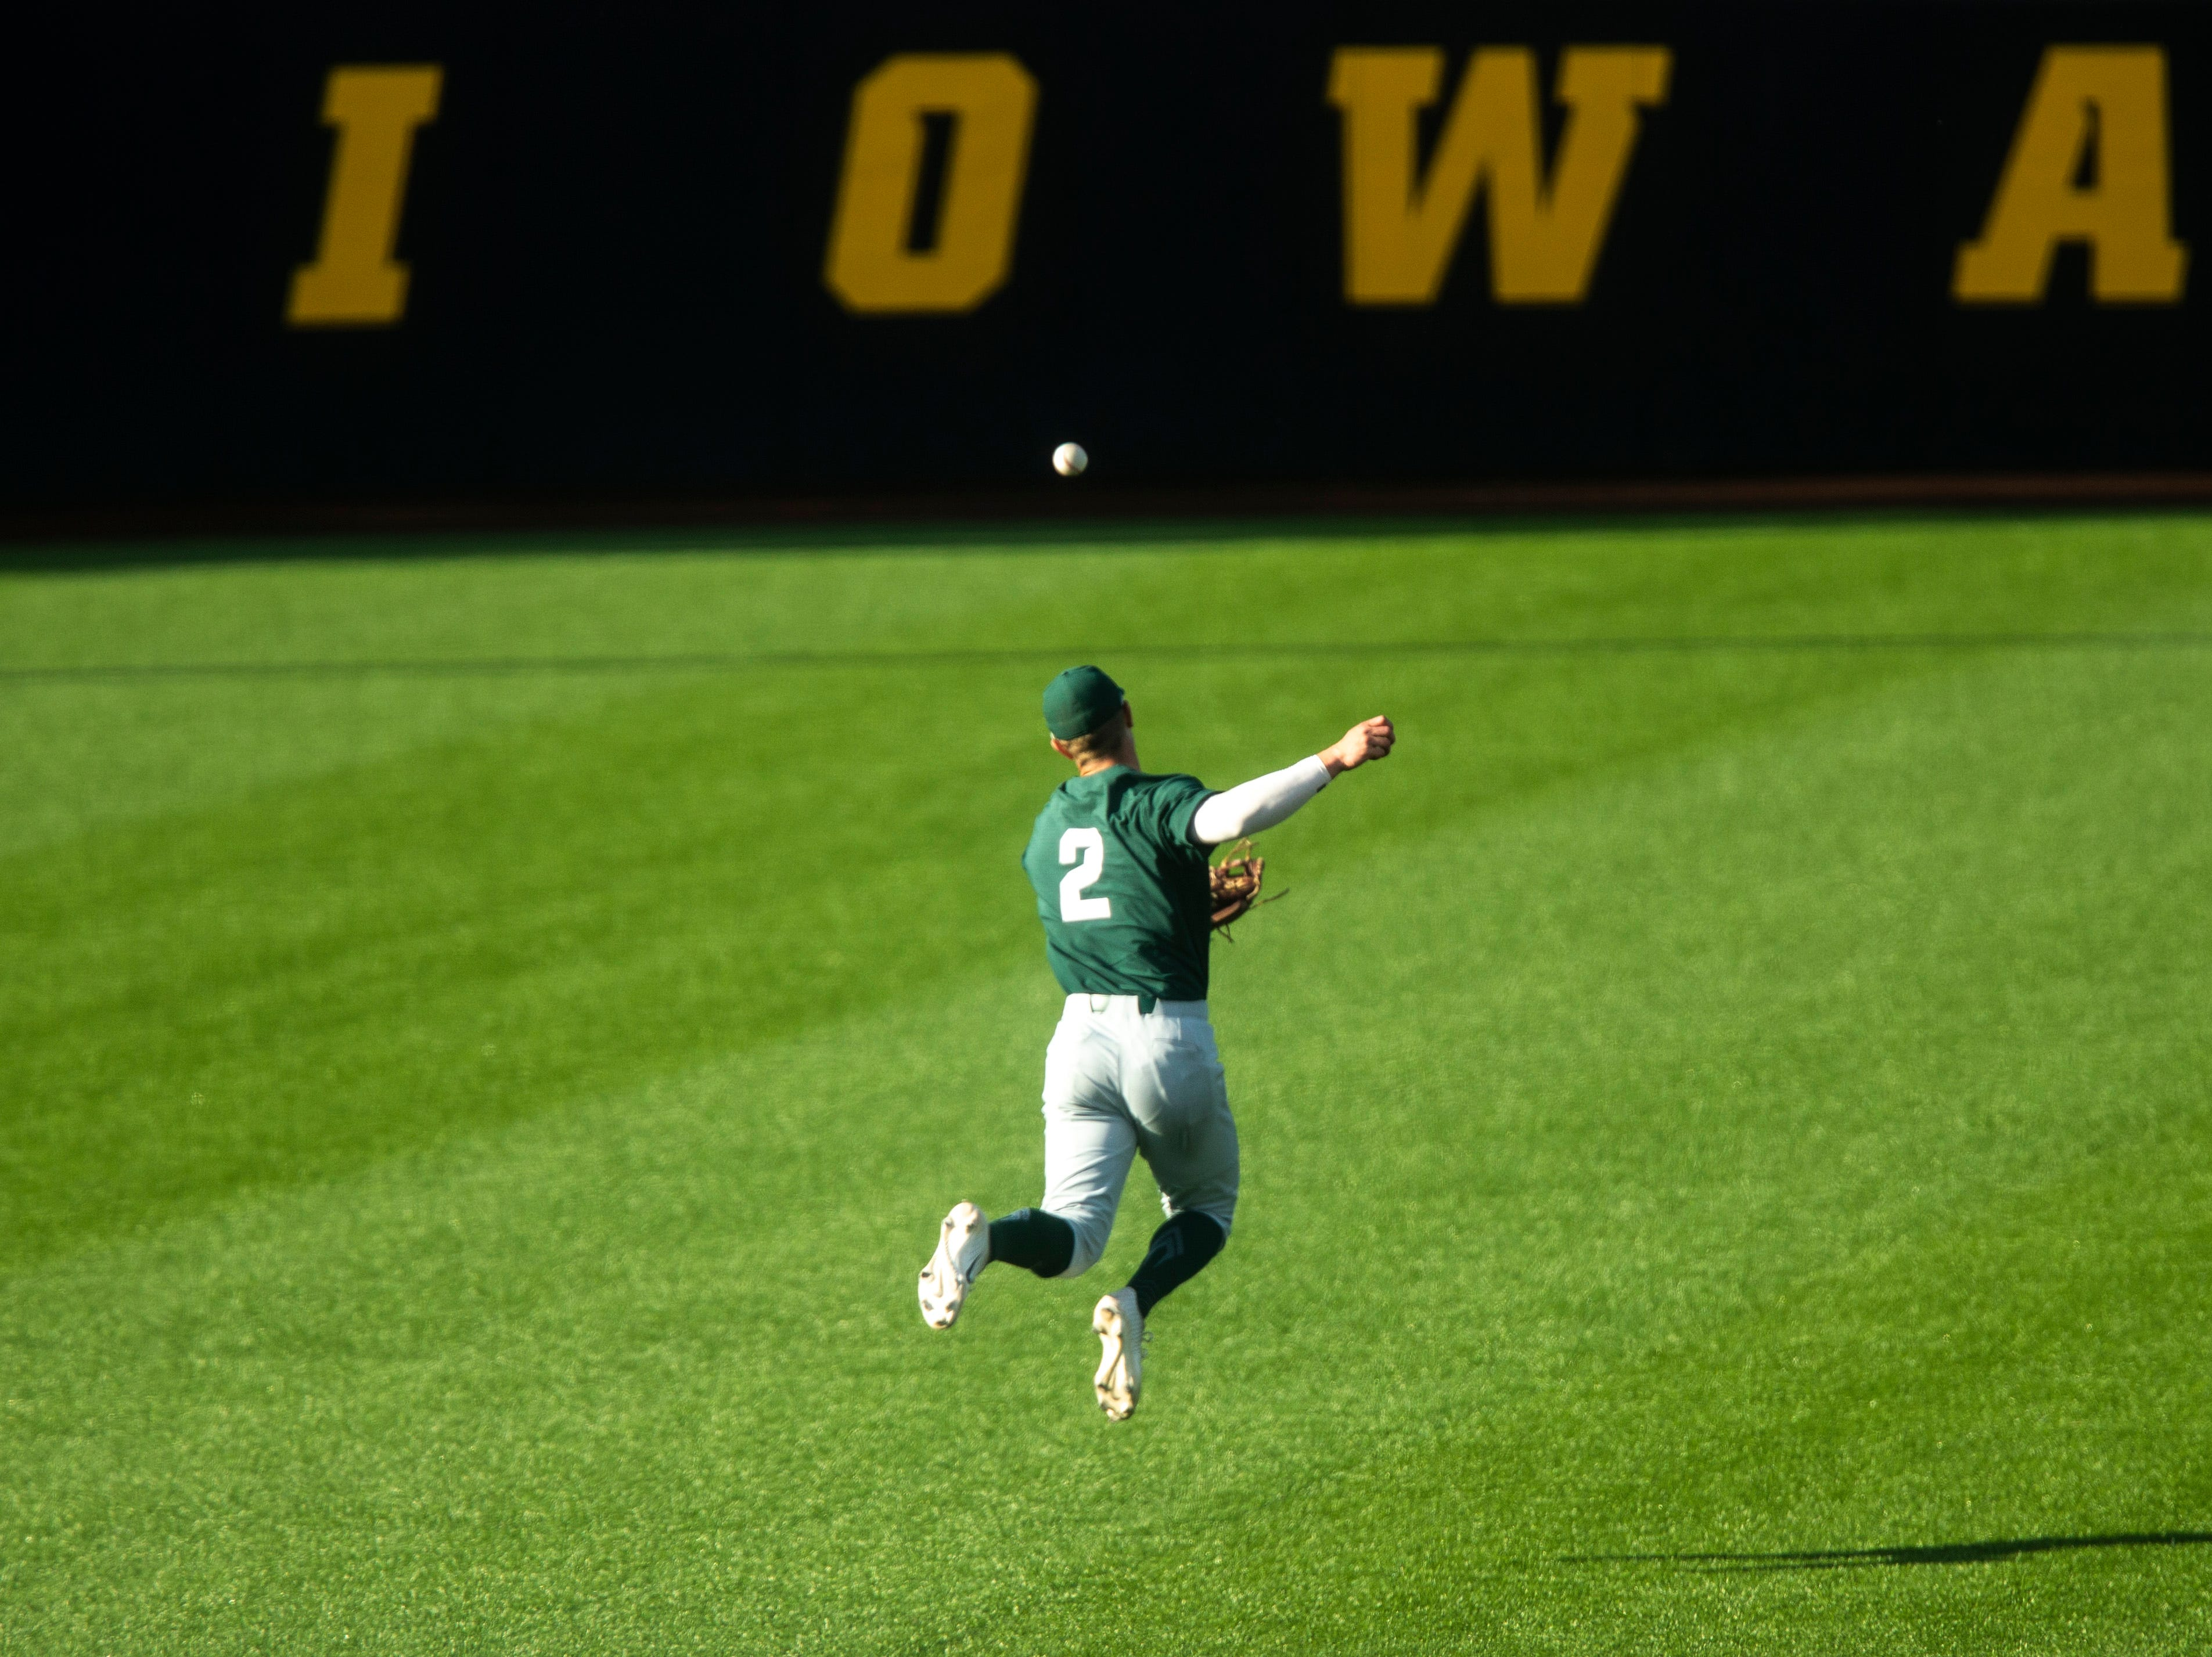 Michigan State's Marty Bechina (2) misses an out during a NCAA Big Ten Conference baseball game, Friday, May 10, 2019, at Duane Banks Field on the University of Iowa campus in Iowa City, Iowa.